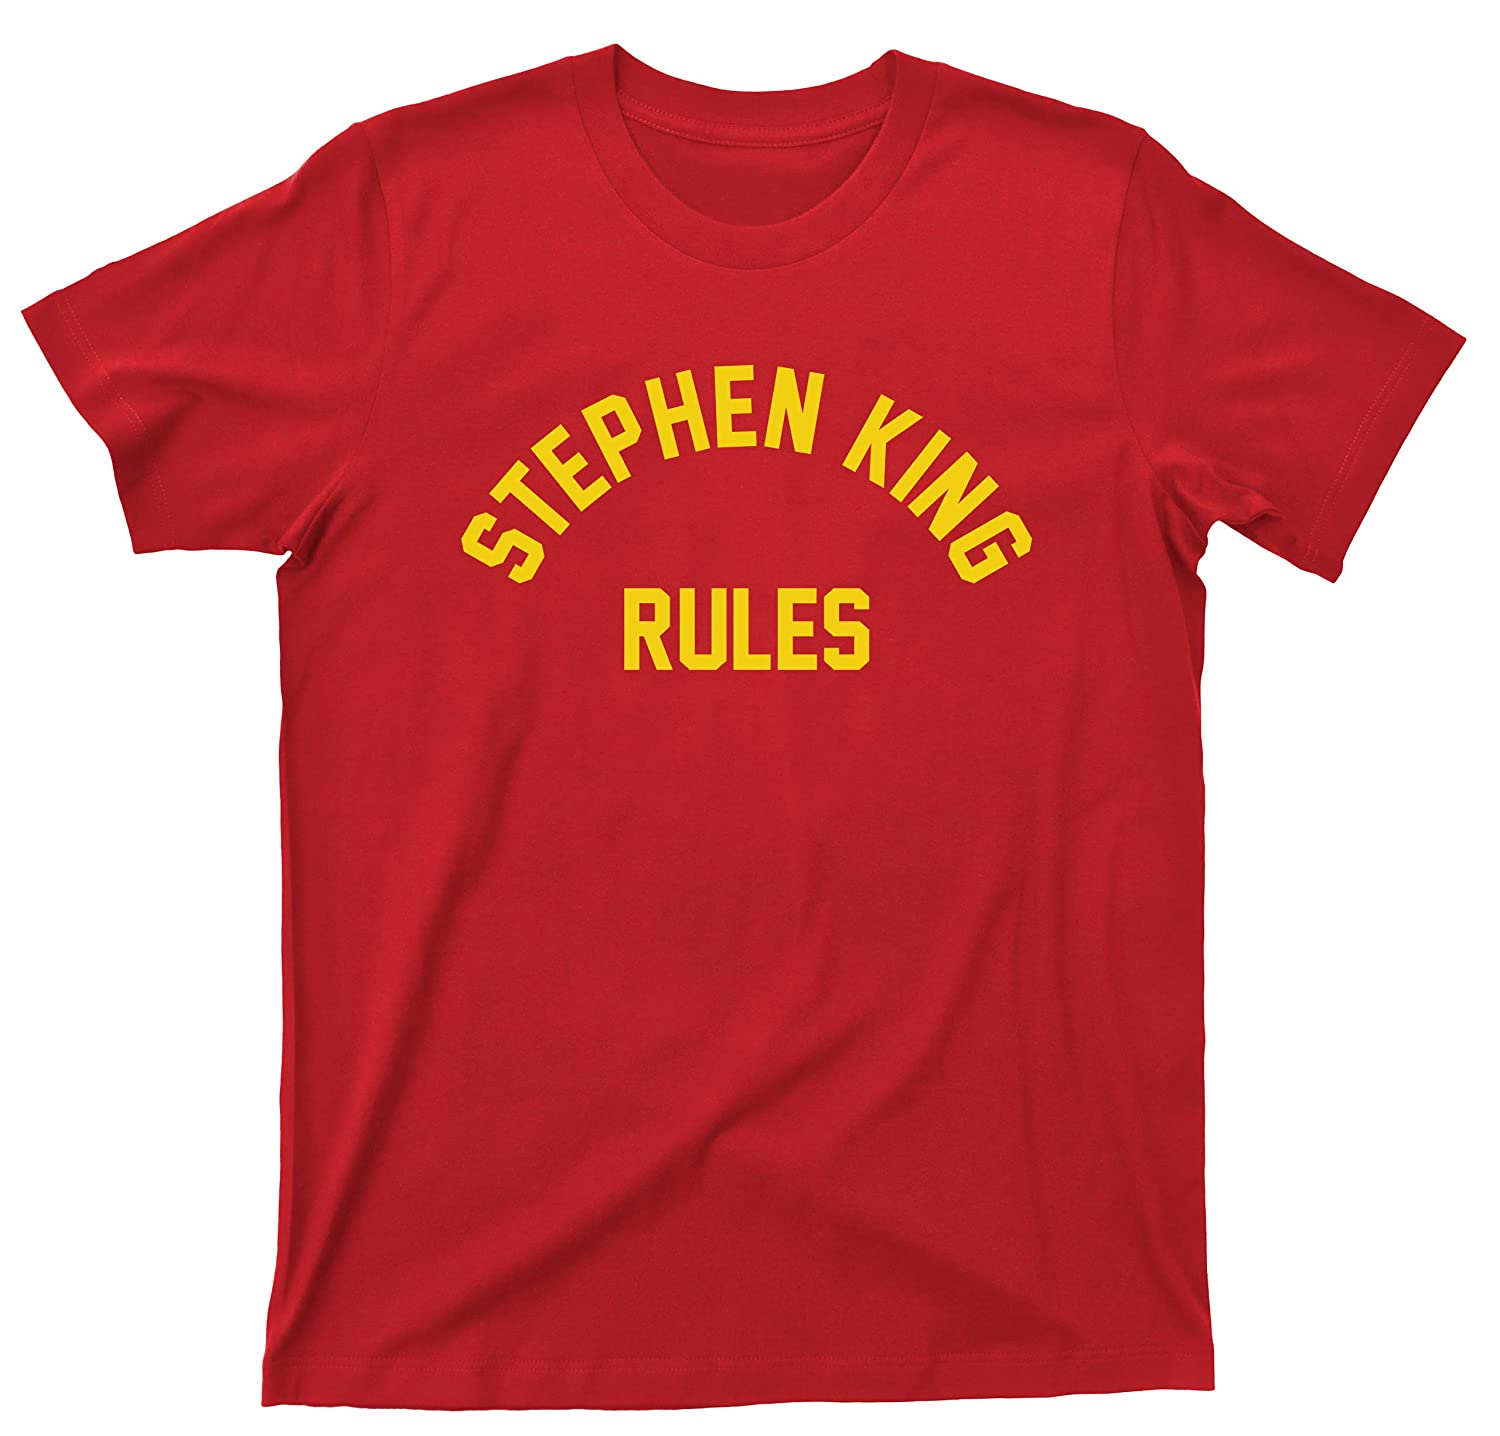 298e17453 Amazon.com: Stephen King Rules T Shirt Author of Fiction Scary Horror  Movies Monster Squad Tee: Clothing